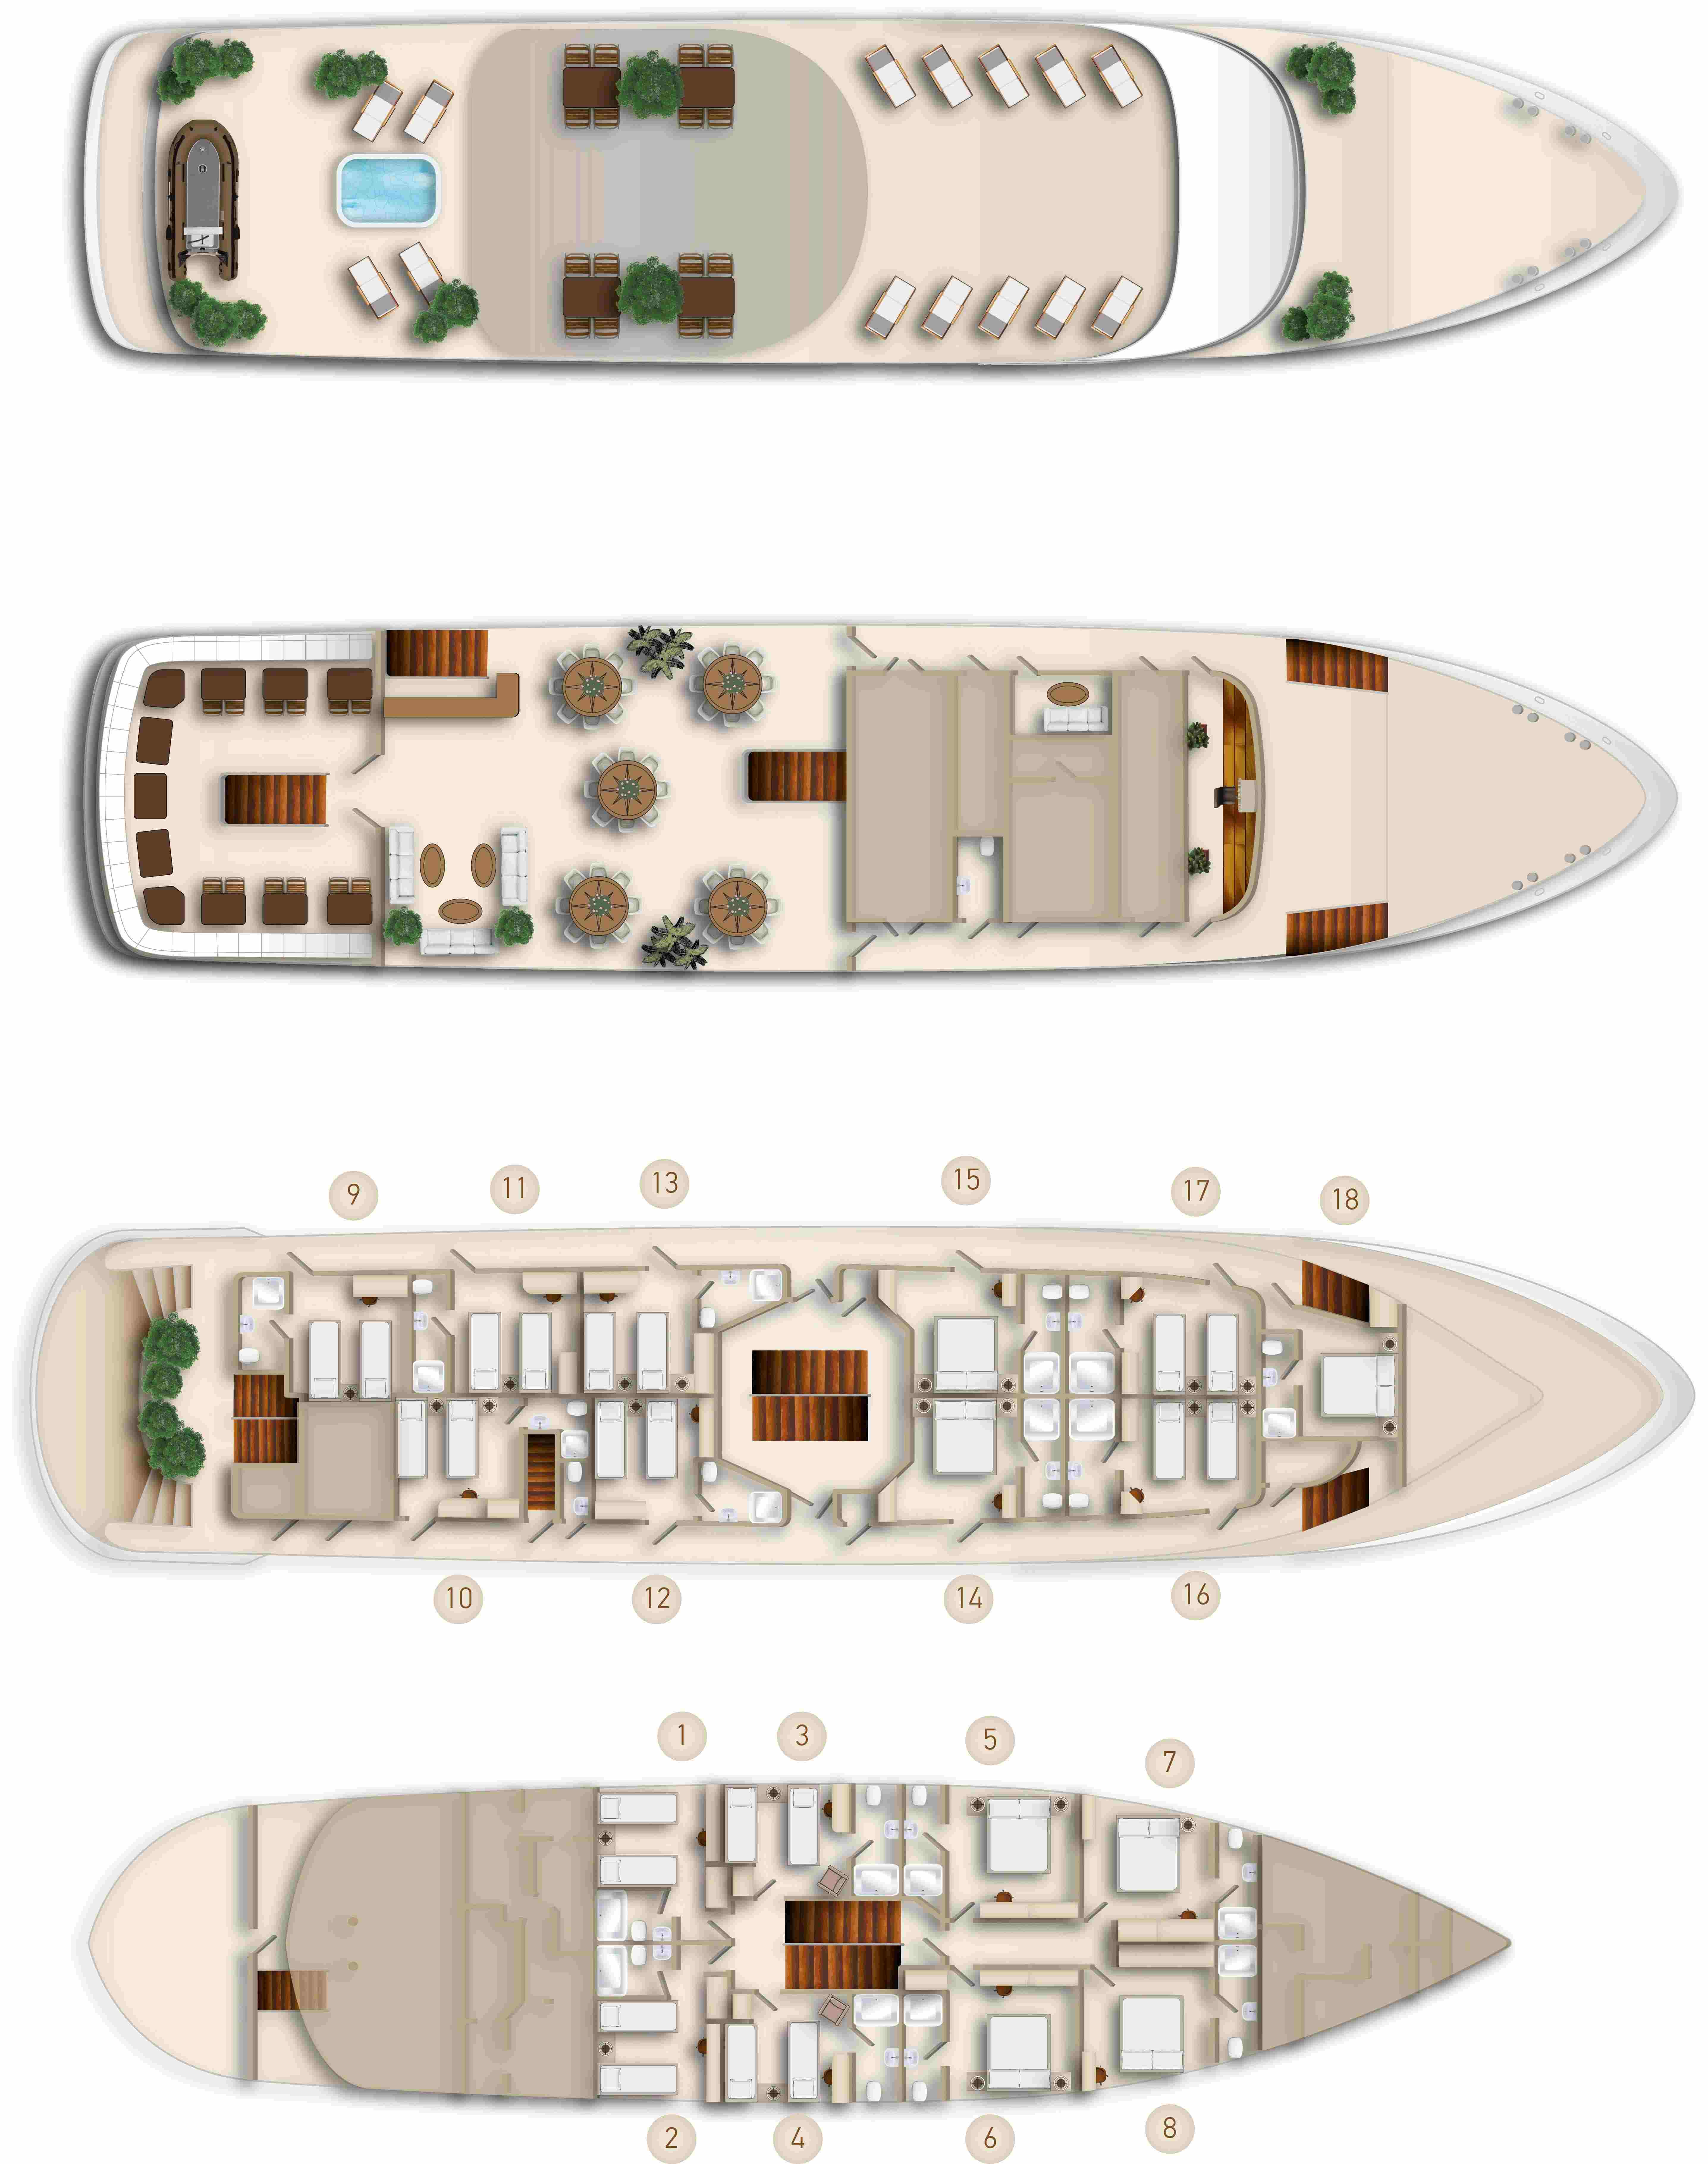 Cabin layout for Invictus